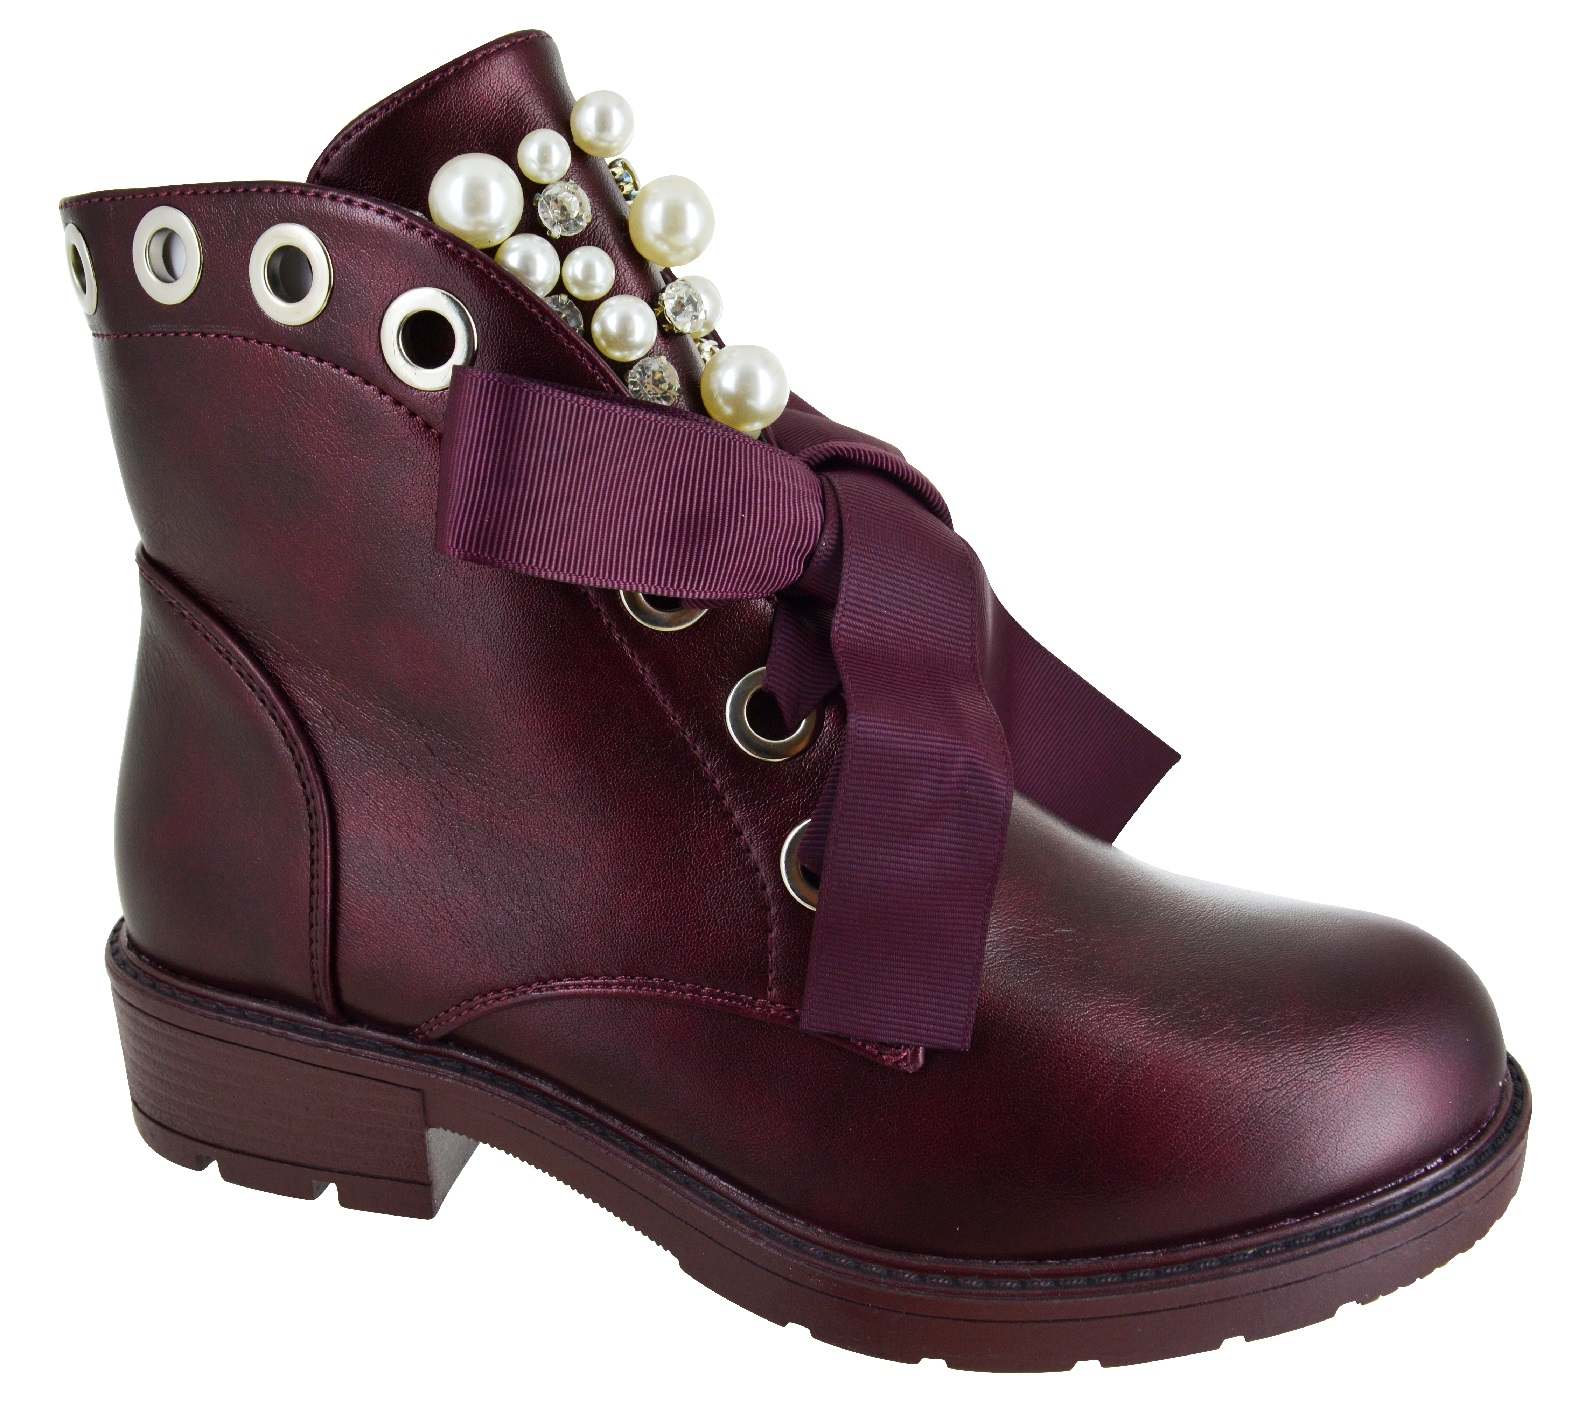 LADIES-WOMENS-ANKLE-LACE-UP-STUDDED-PEALS-PUNK-MILITARY-LOW-HEEL-ZIP-SHOES-BOOTS